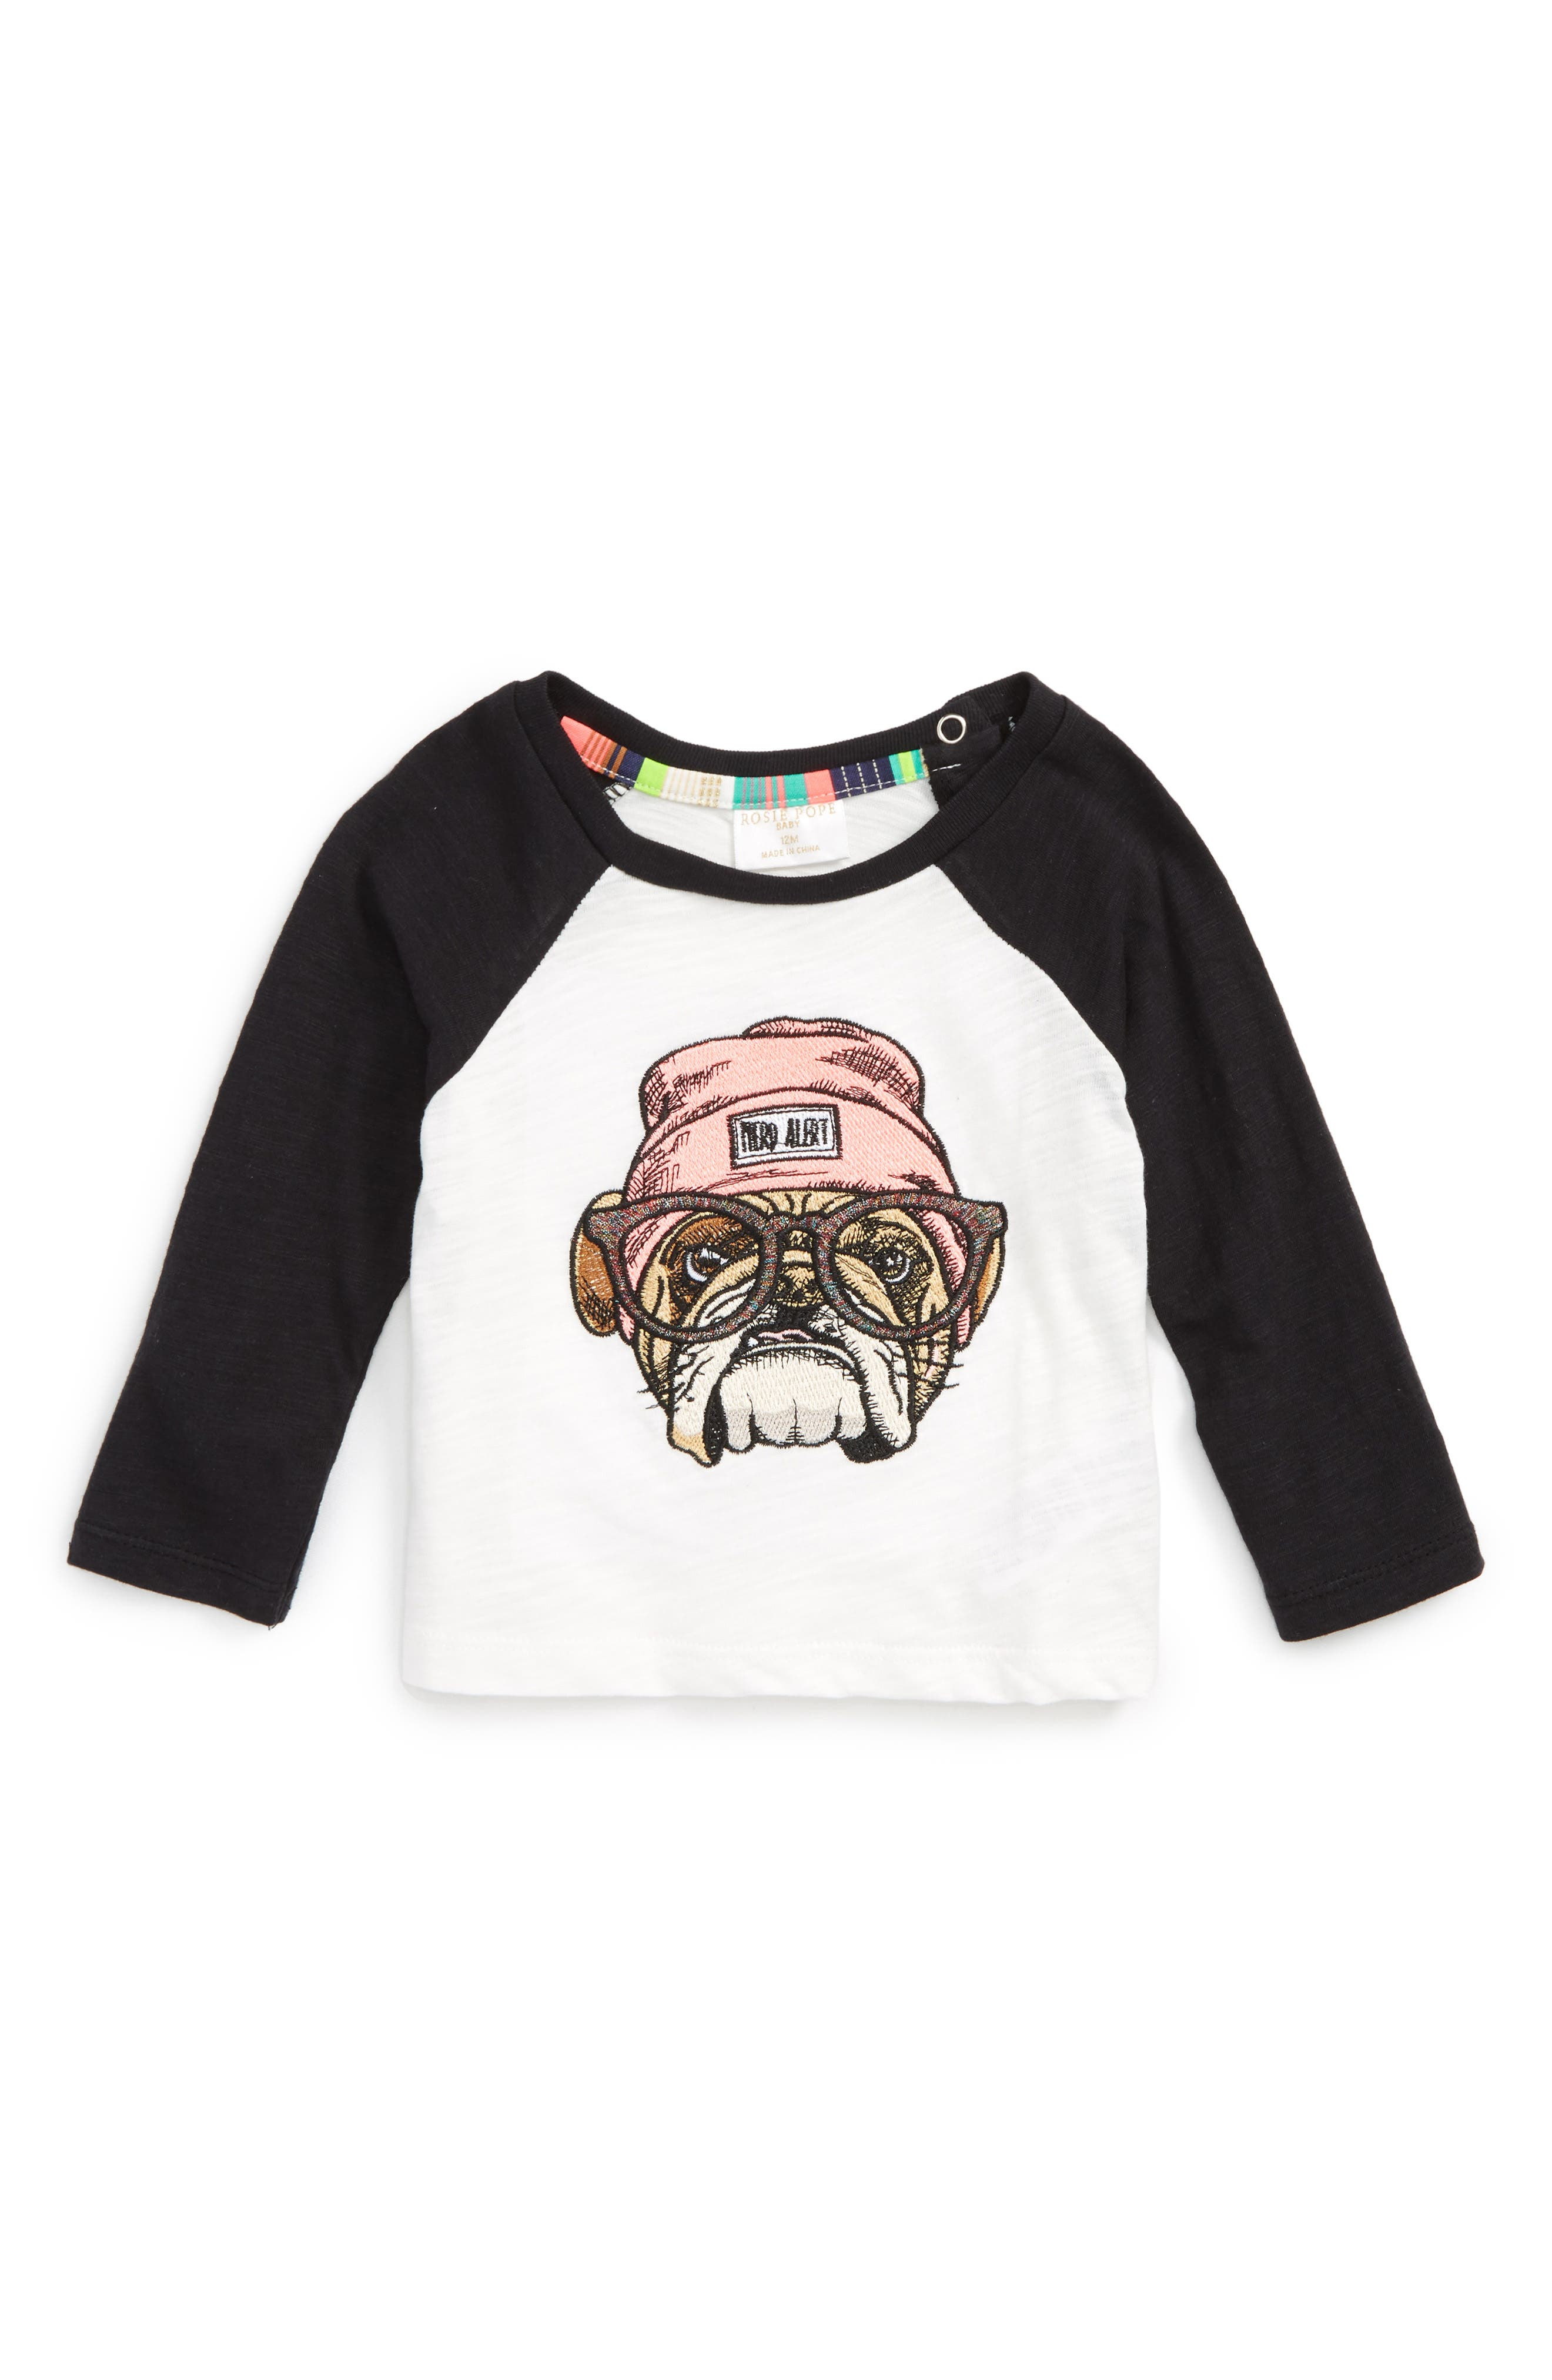 Alternate Image 1 Selected - Rosie Pope Embroidered Baseball Tee (Baby Girls)